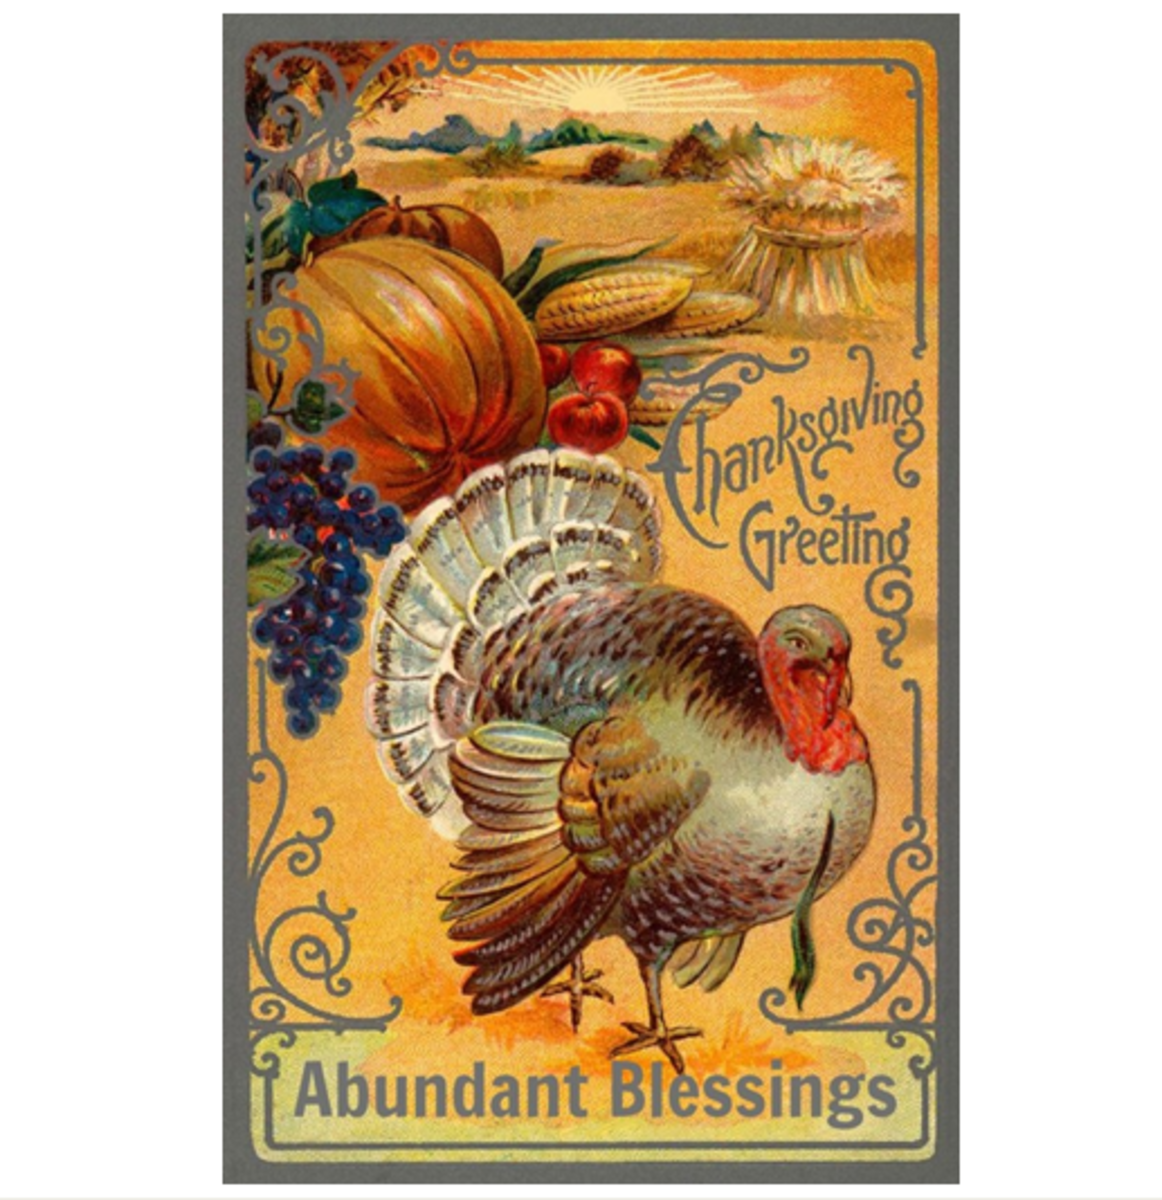 Thanksgiving Greeting for Abundant Blessings